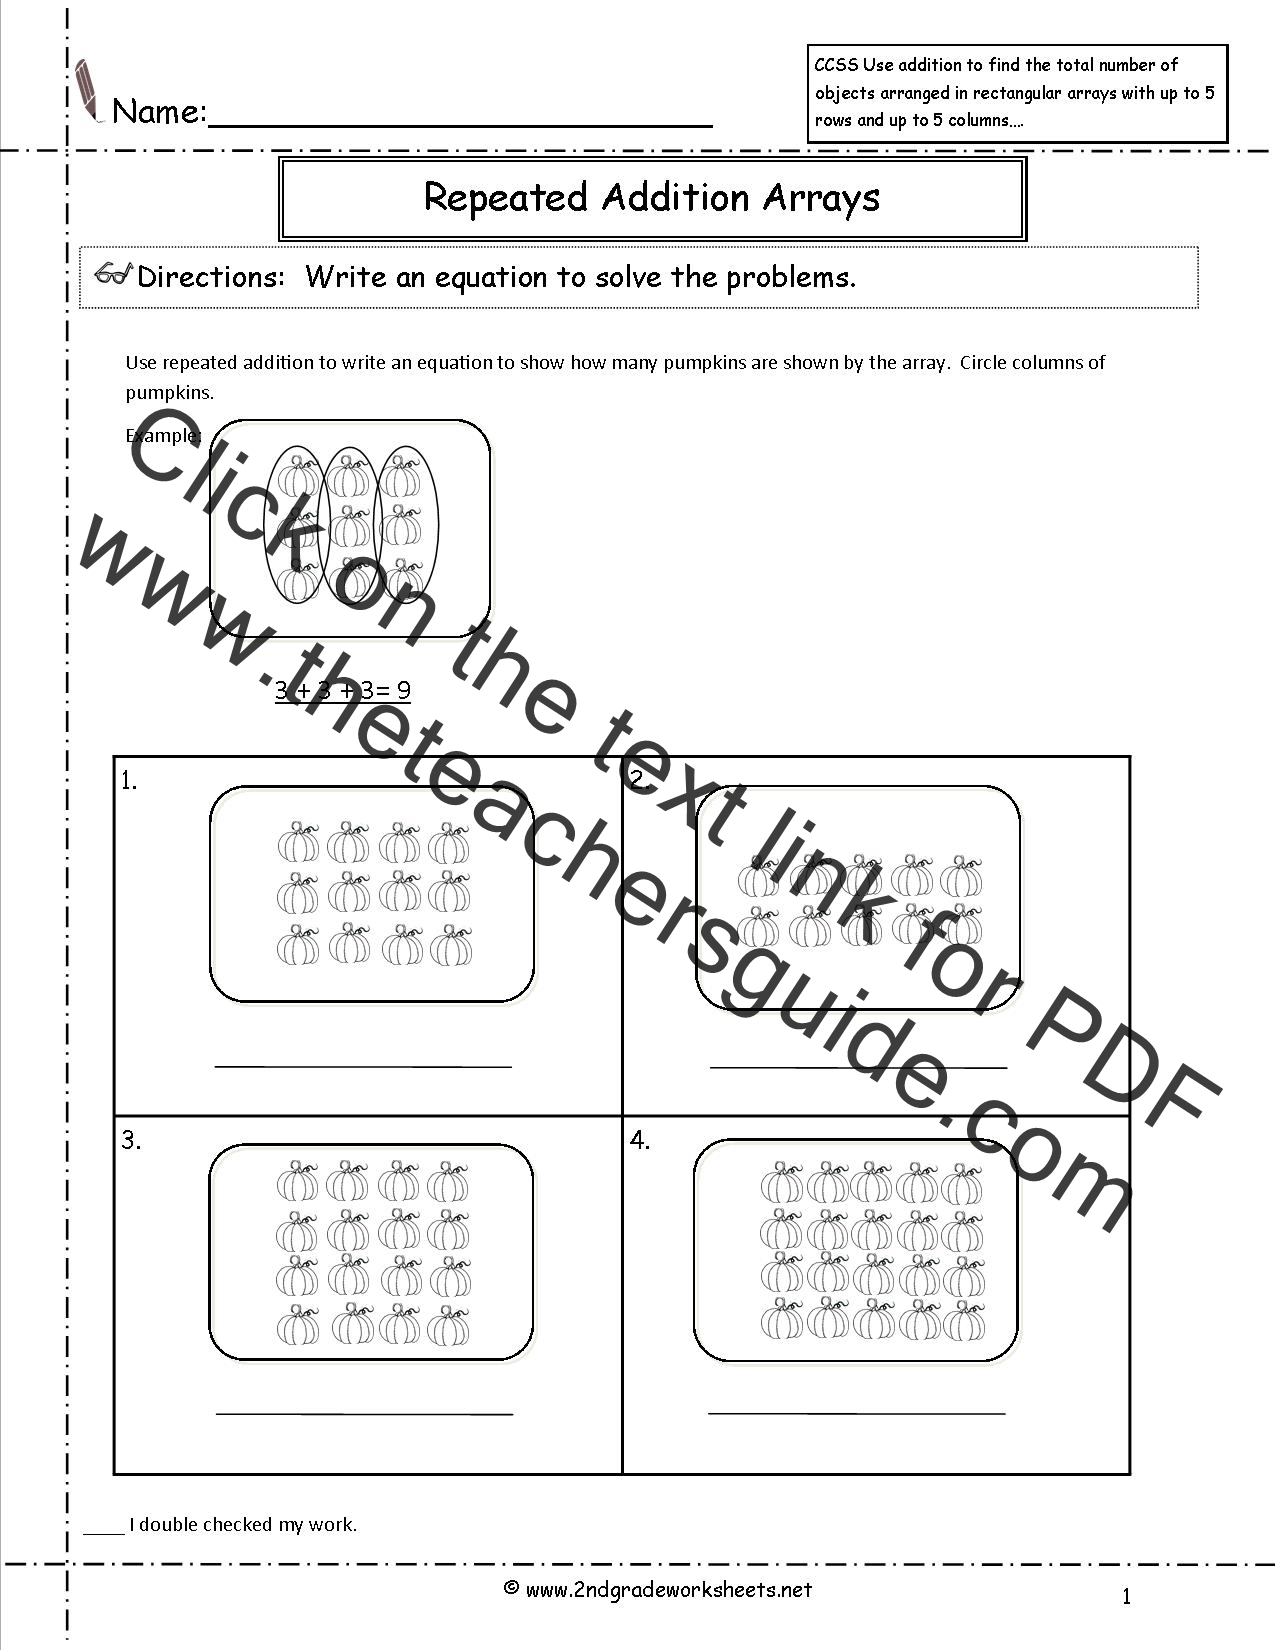 CCSS 2OA4 Worksheets – Arrays Worksheet